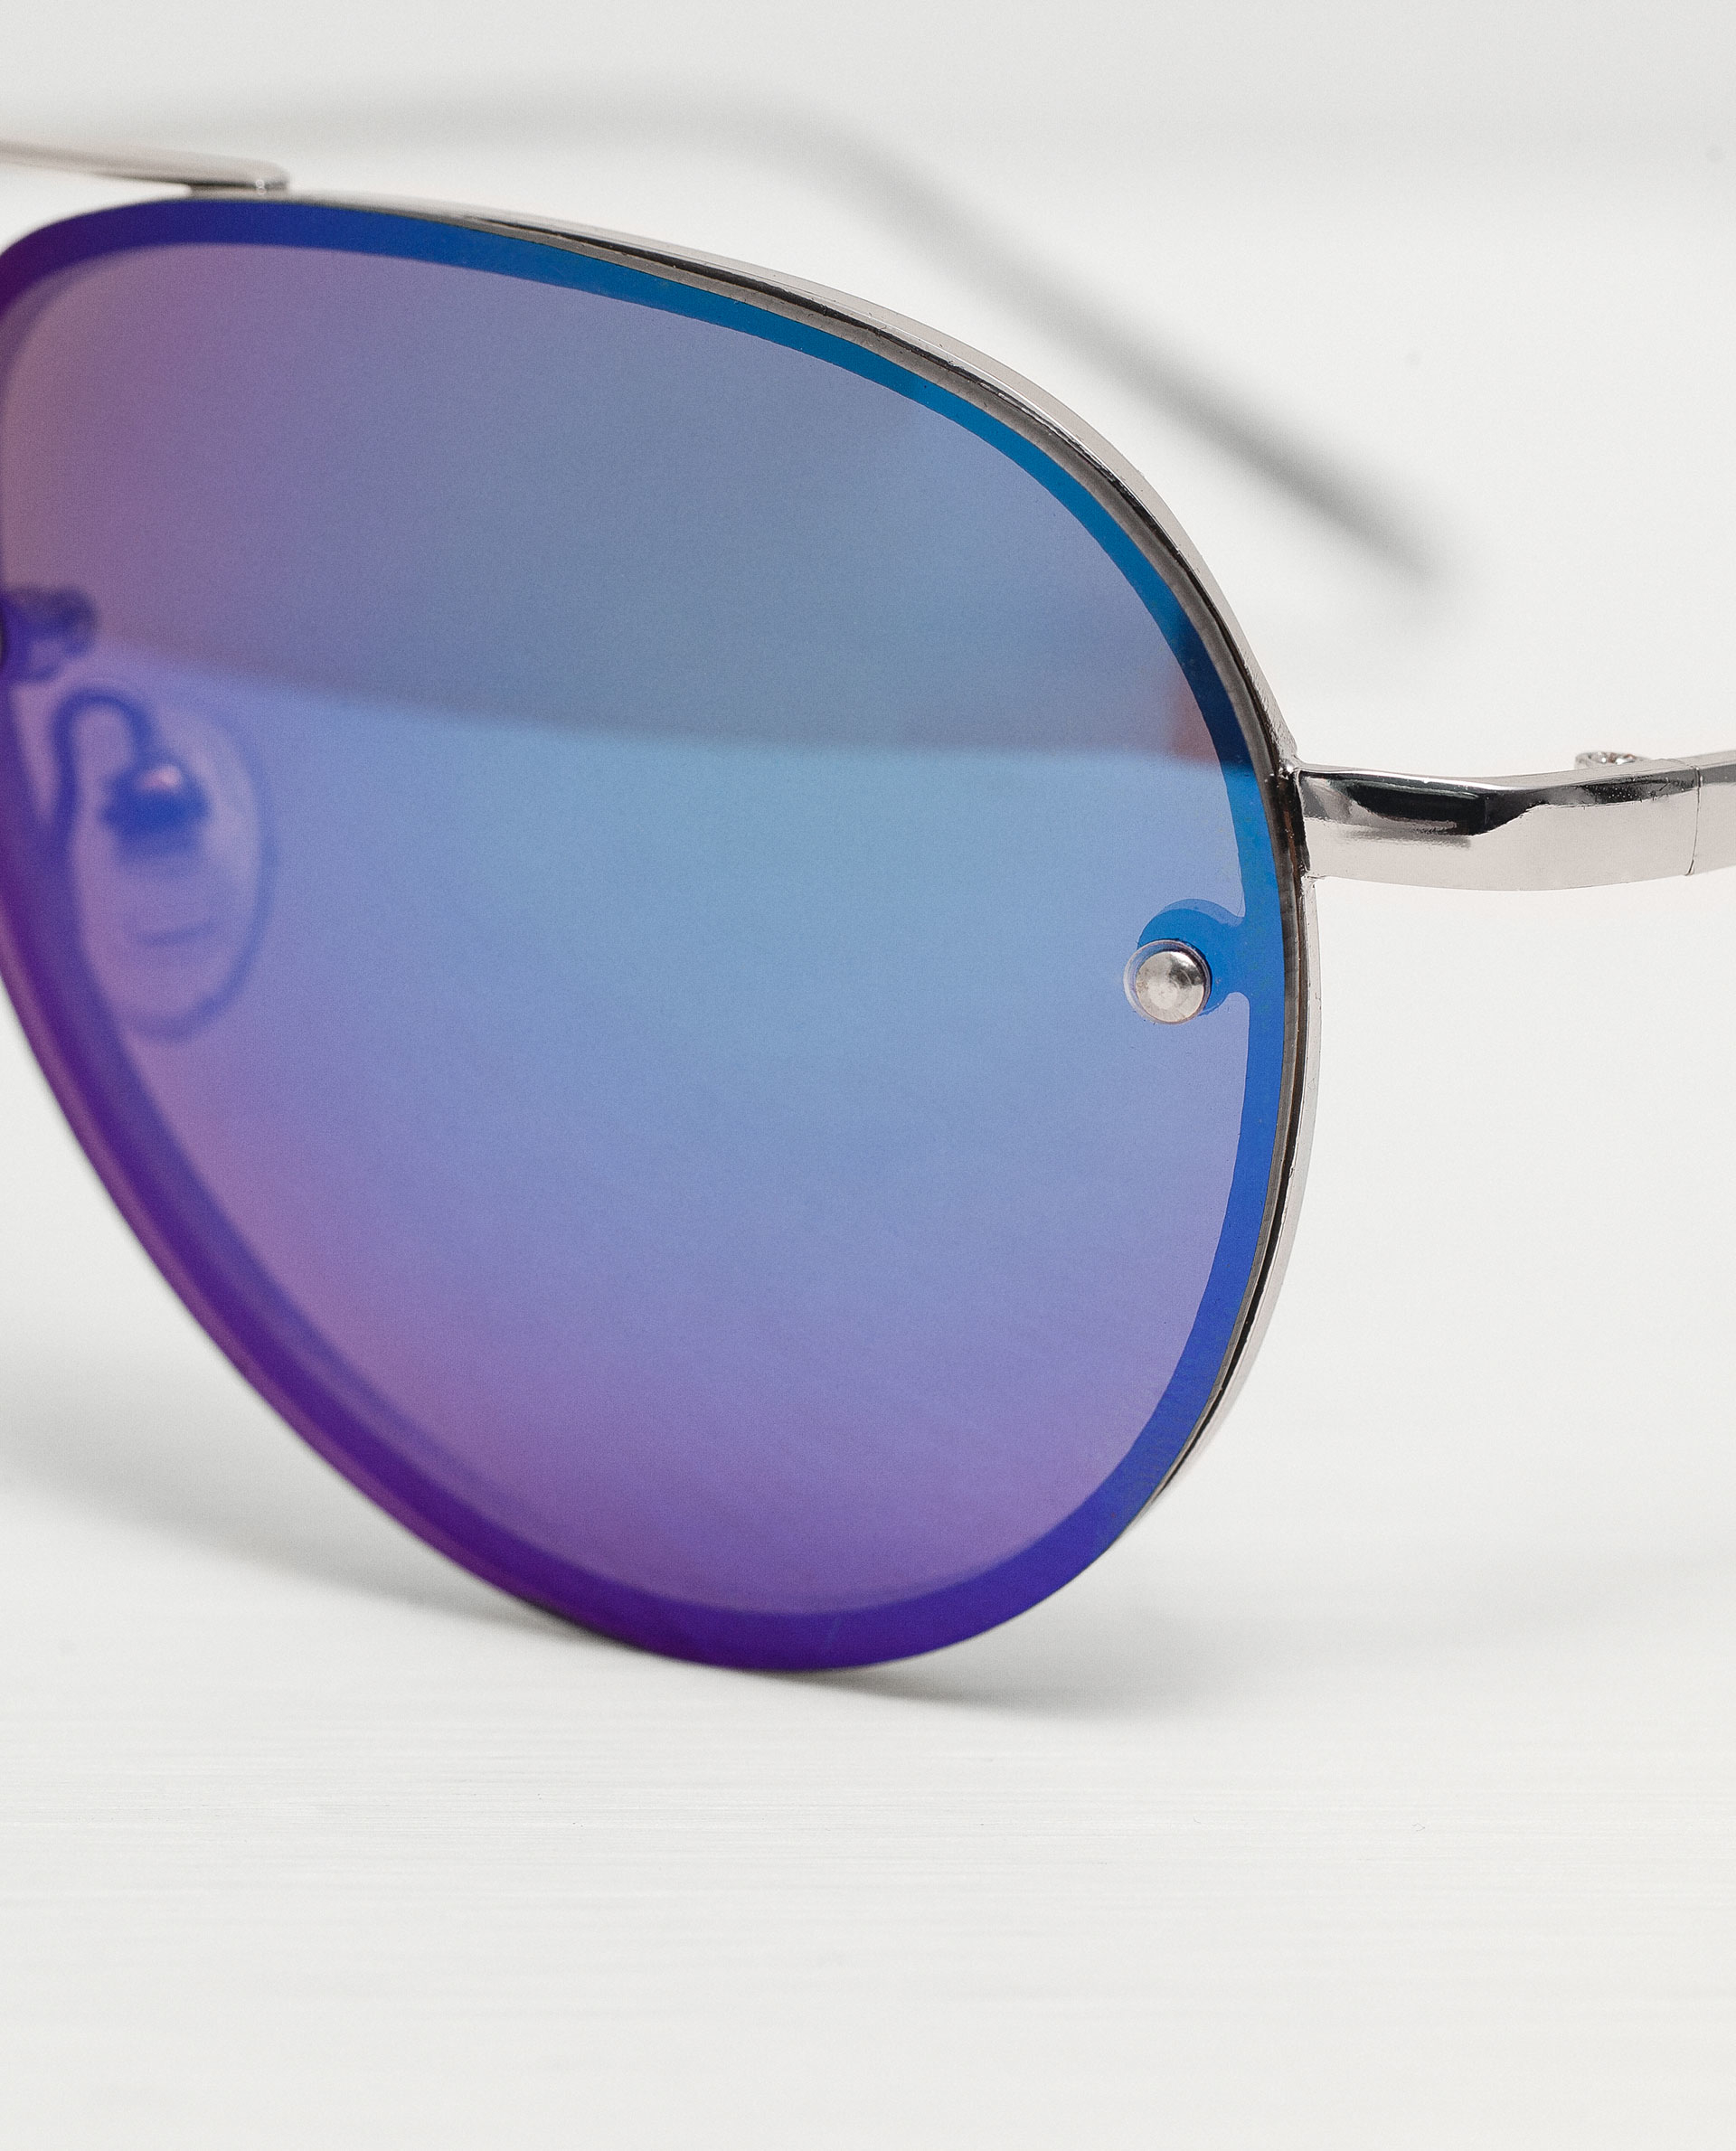 blue tinted aviator sunglasses  Zara Blue Tint Aviator Sunglasses Blue Tint Aviator Sunglasses in ...